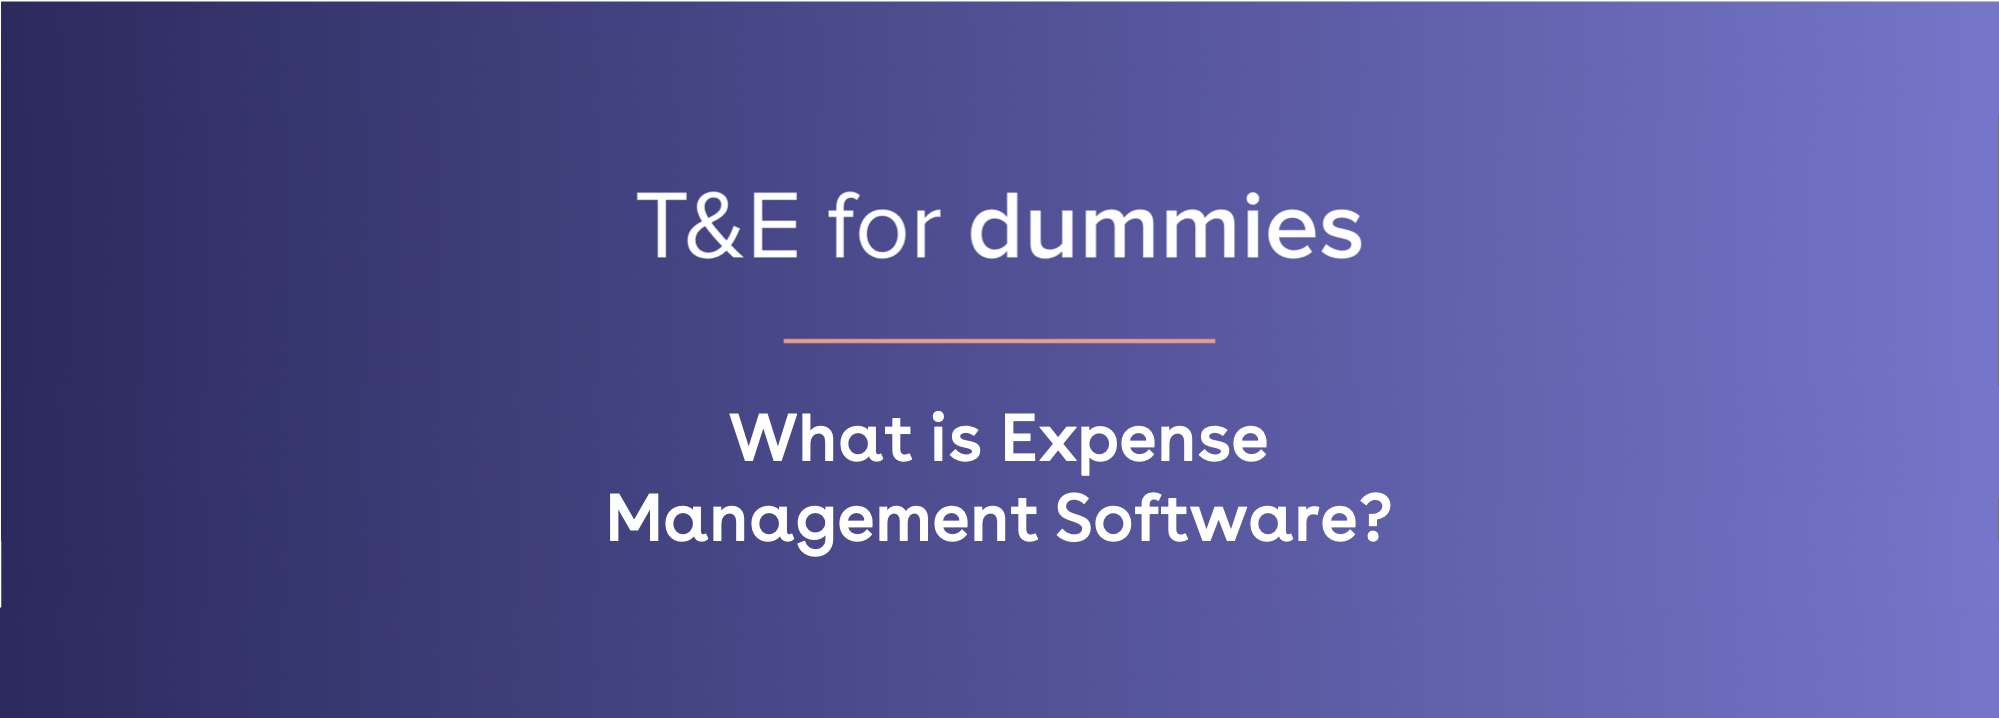 what is expense management software